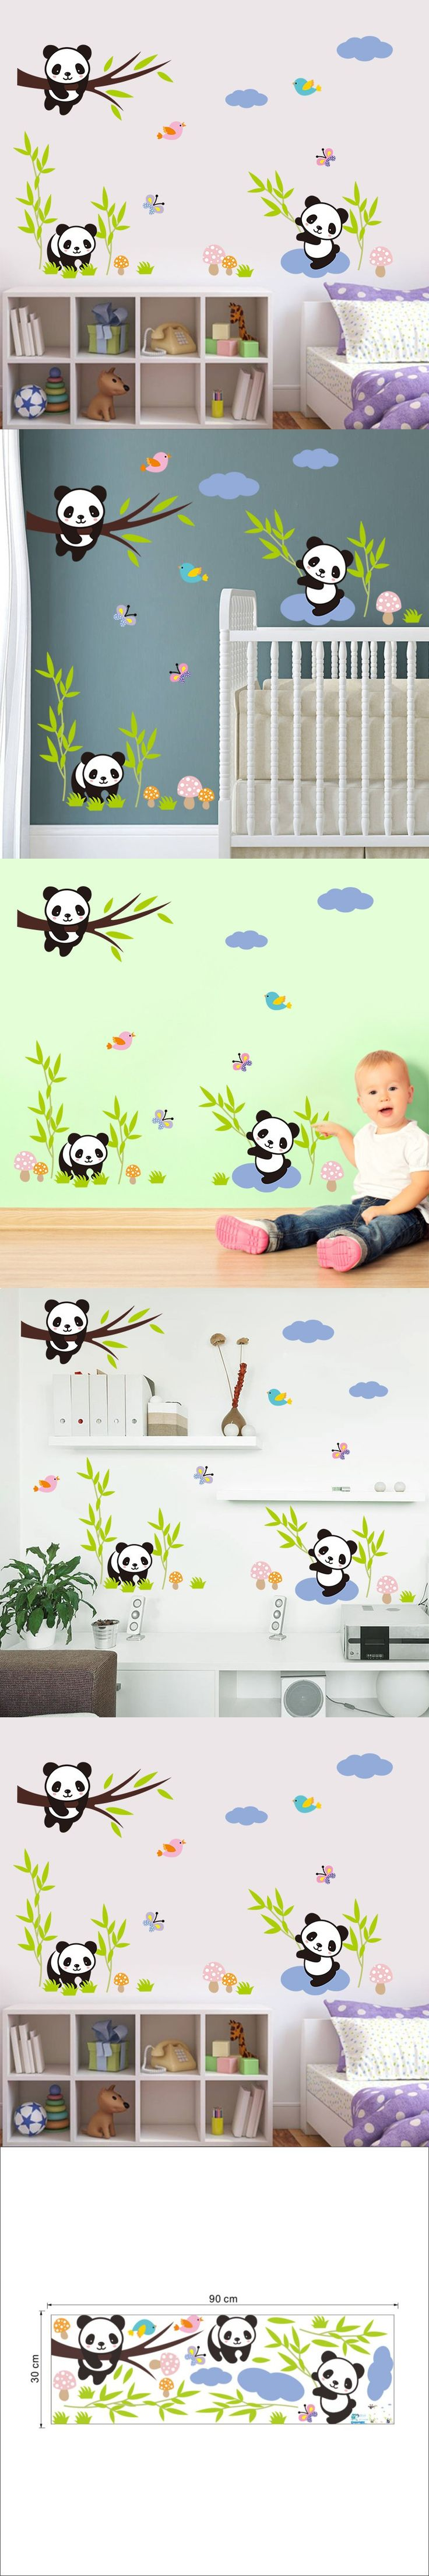 Hot!Cute panda bamboo grass Wall Stickers For kids rooms living room bedroom Home Decor DIY Decoration PVC Removable Waterproof $2.69